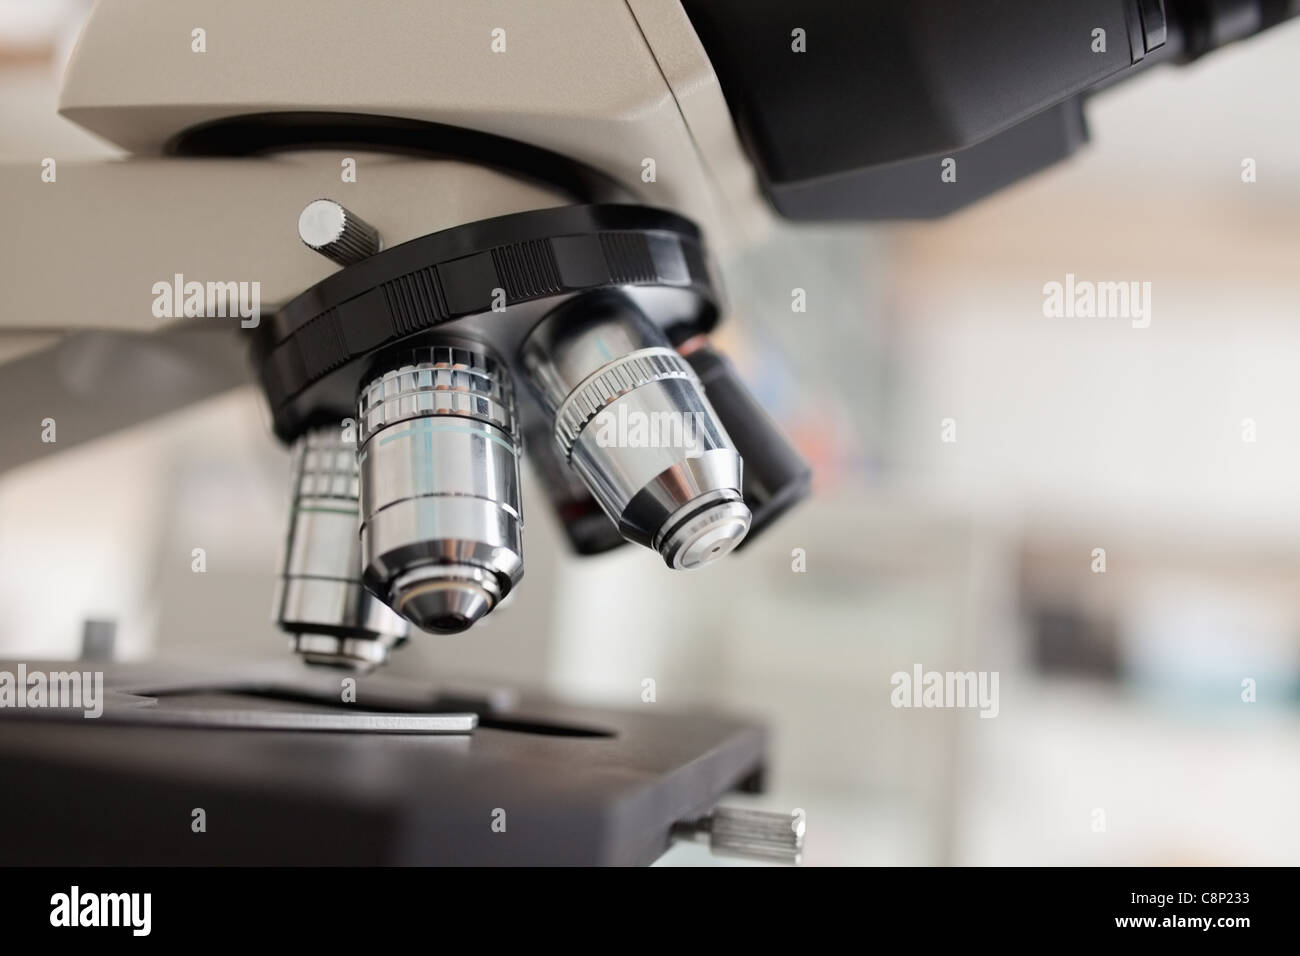 Close up of a microscope - Stock Image